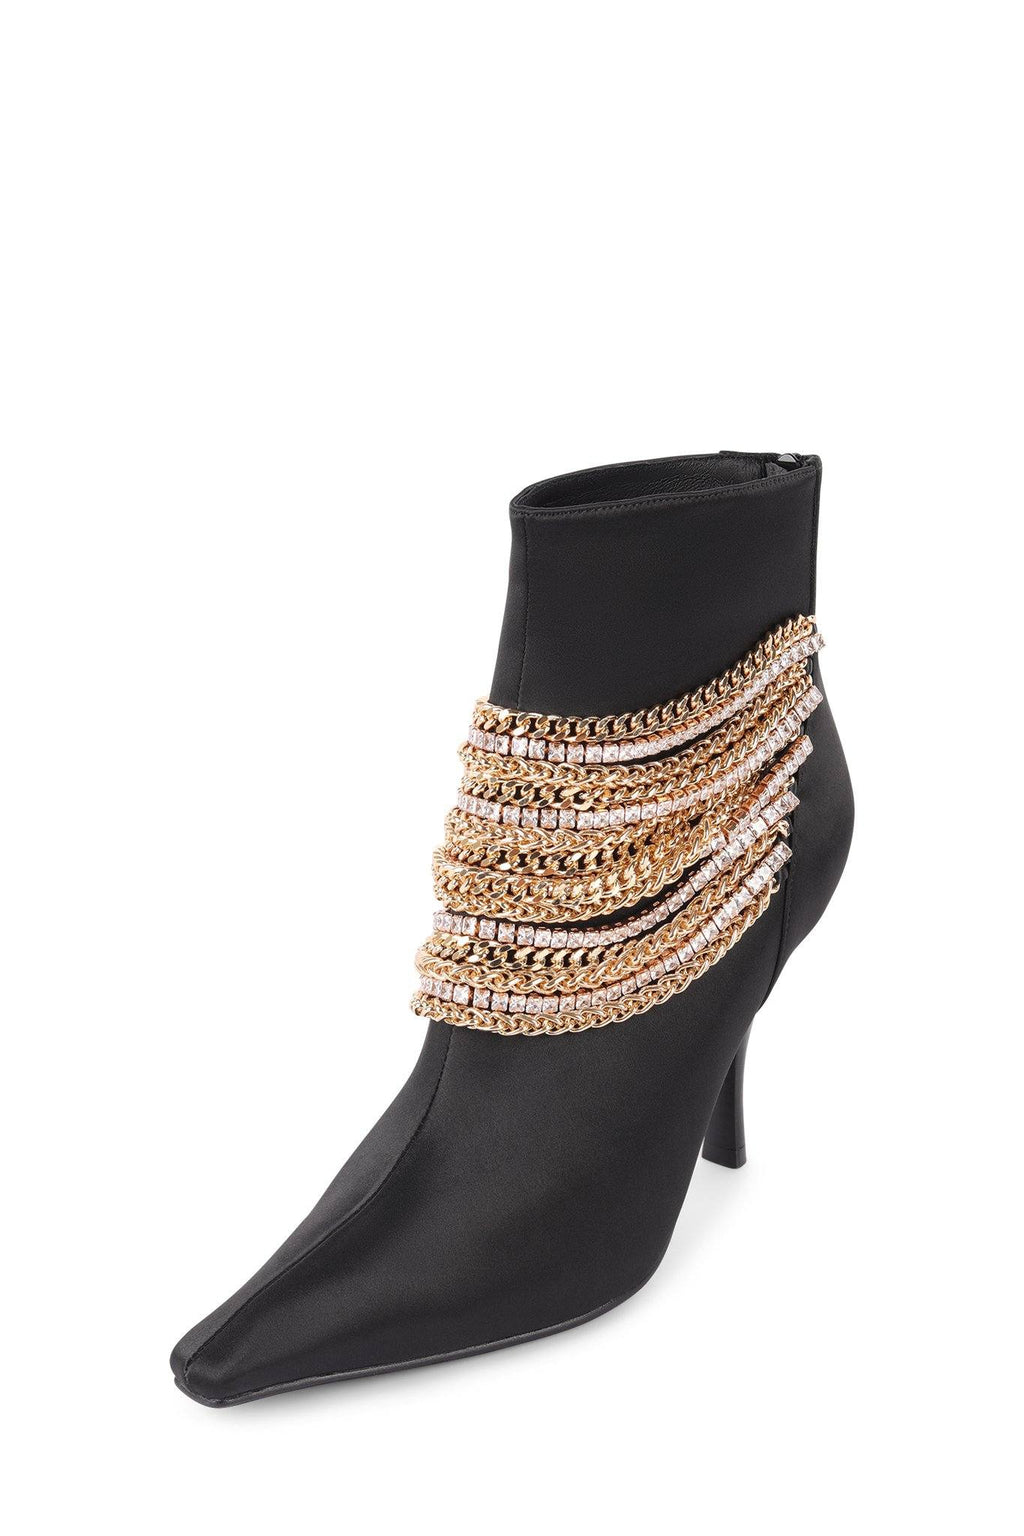 CHAINGE Heeled Bootie STRATEGY